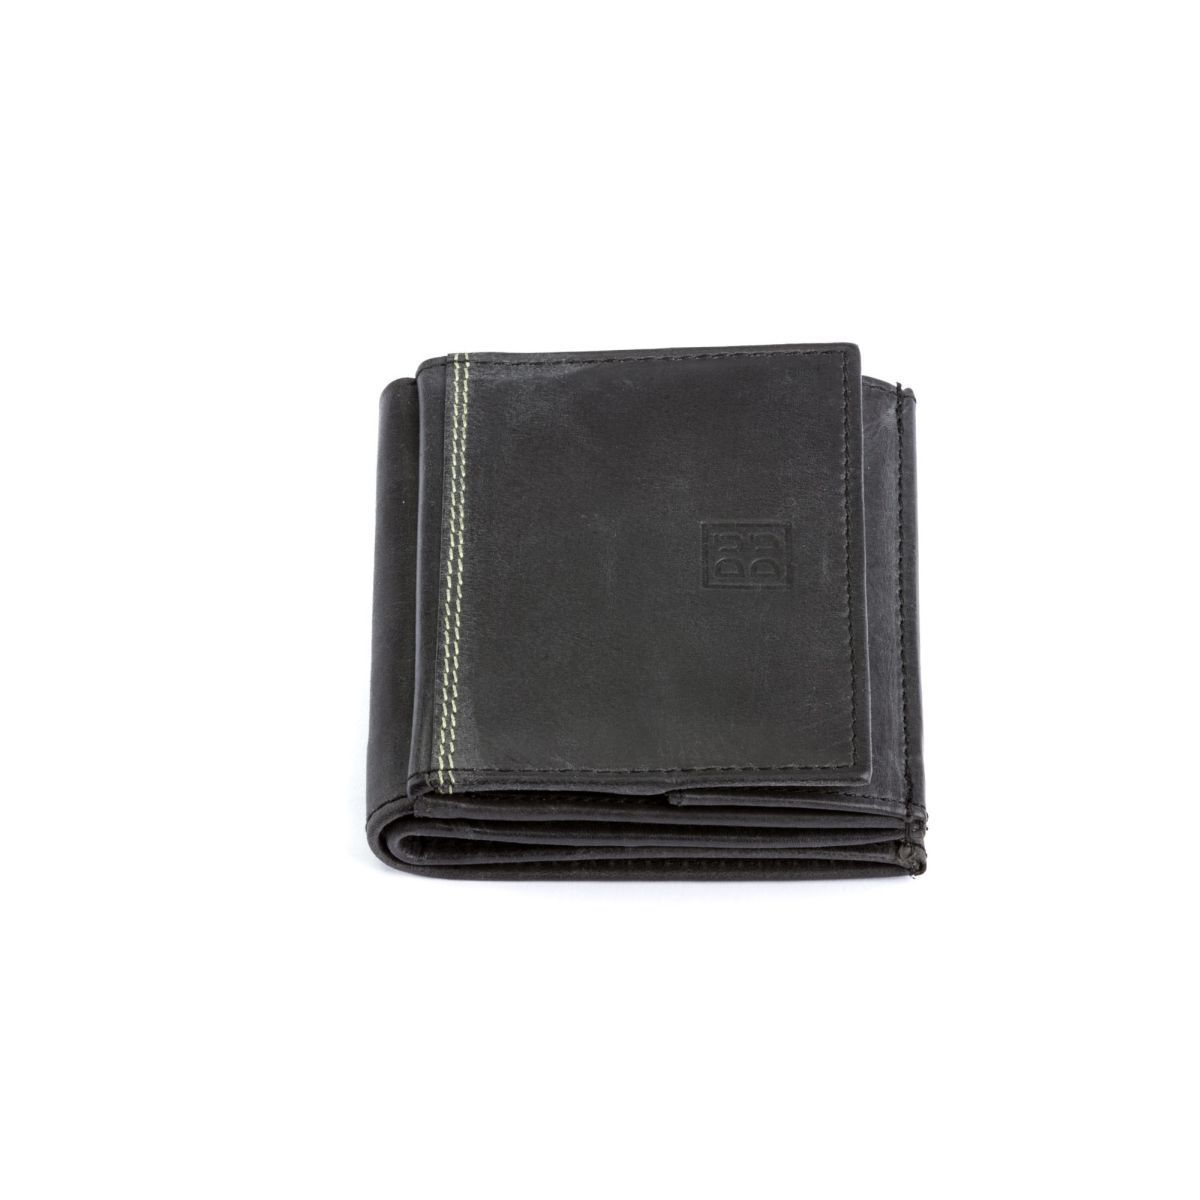 DuDu Small Unique Vintage Leather Wallet  - Black